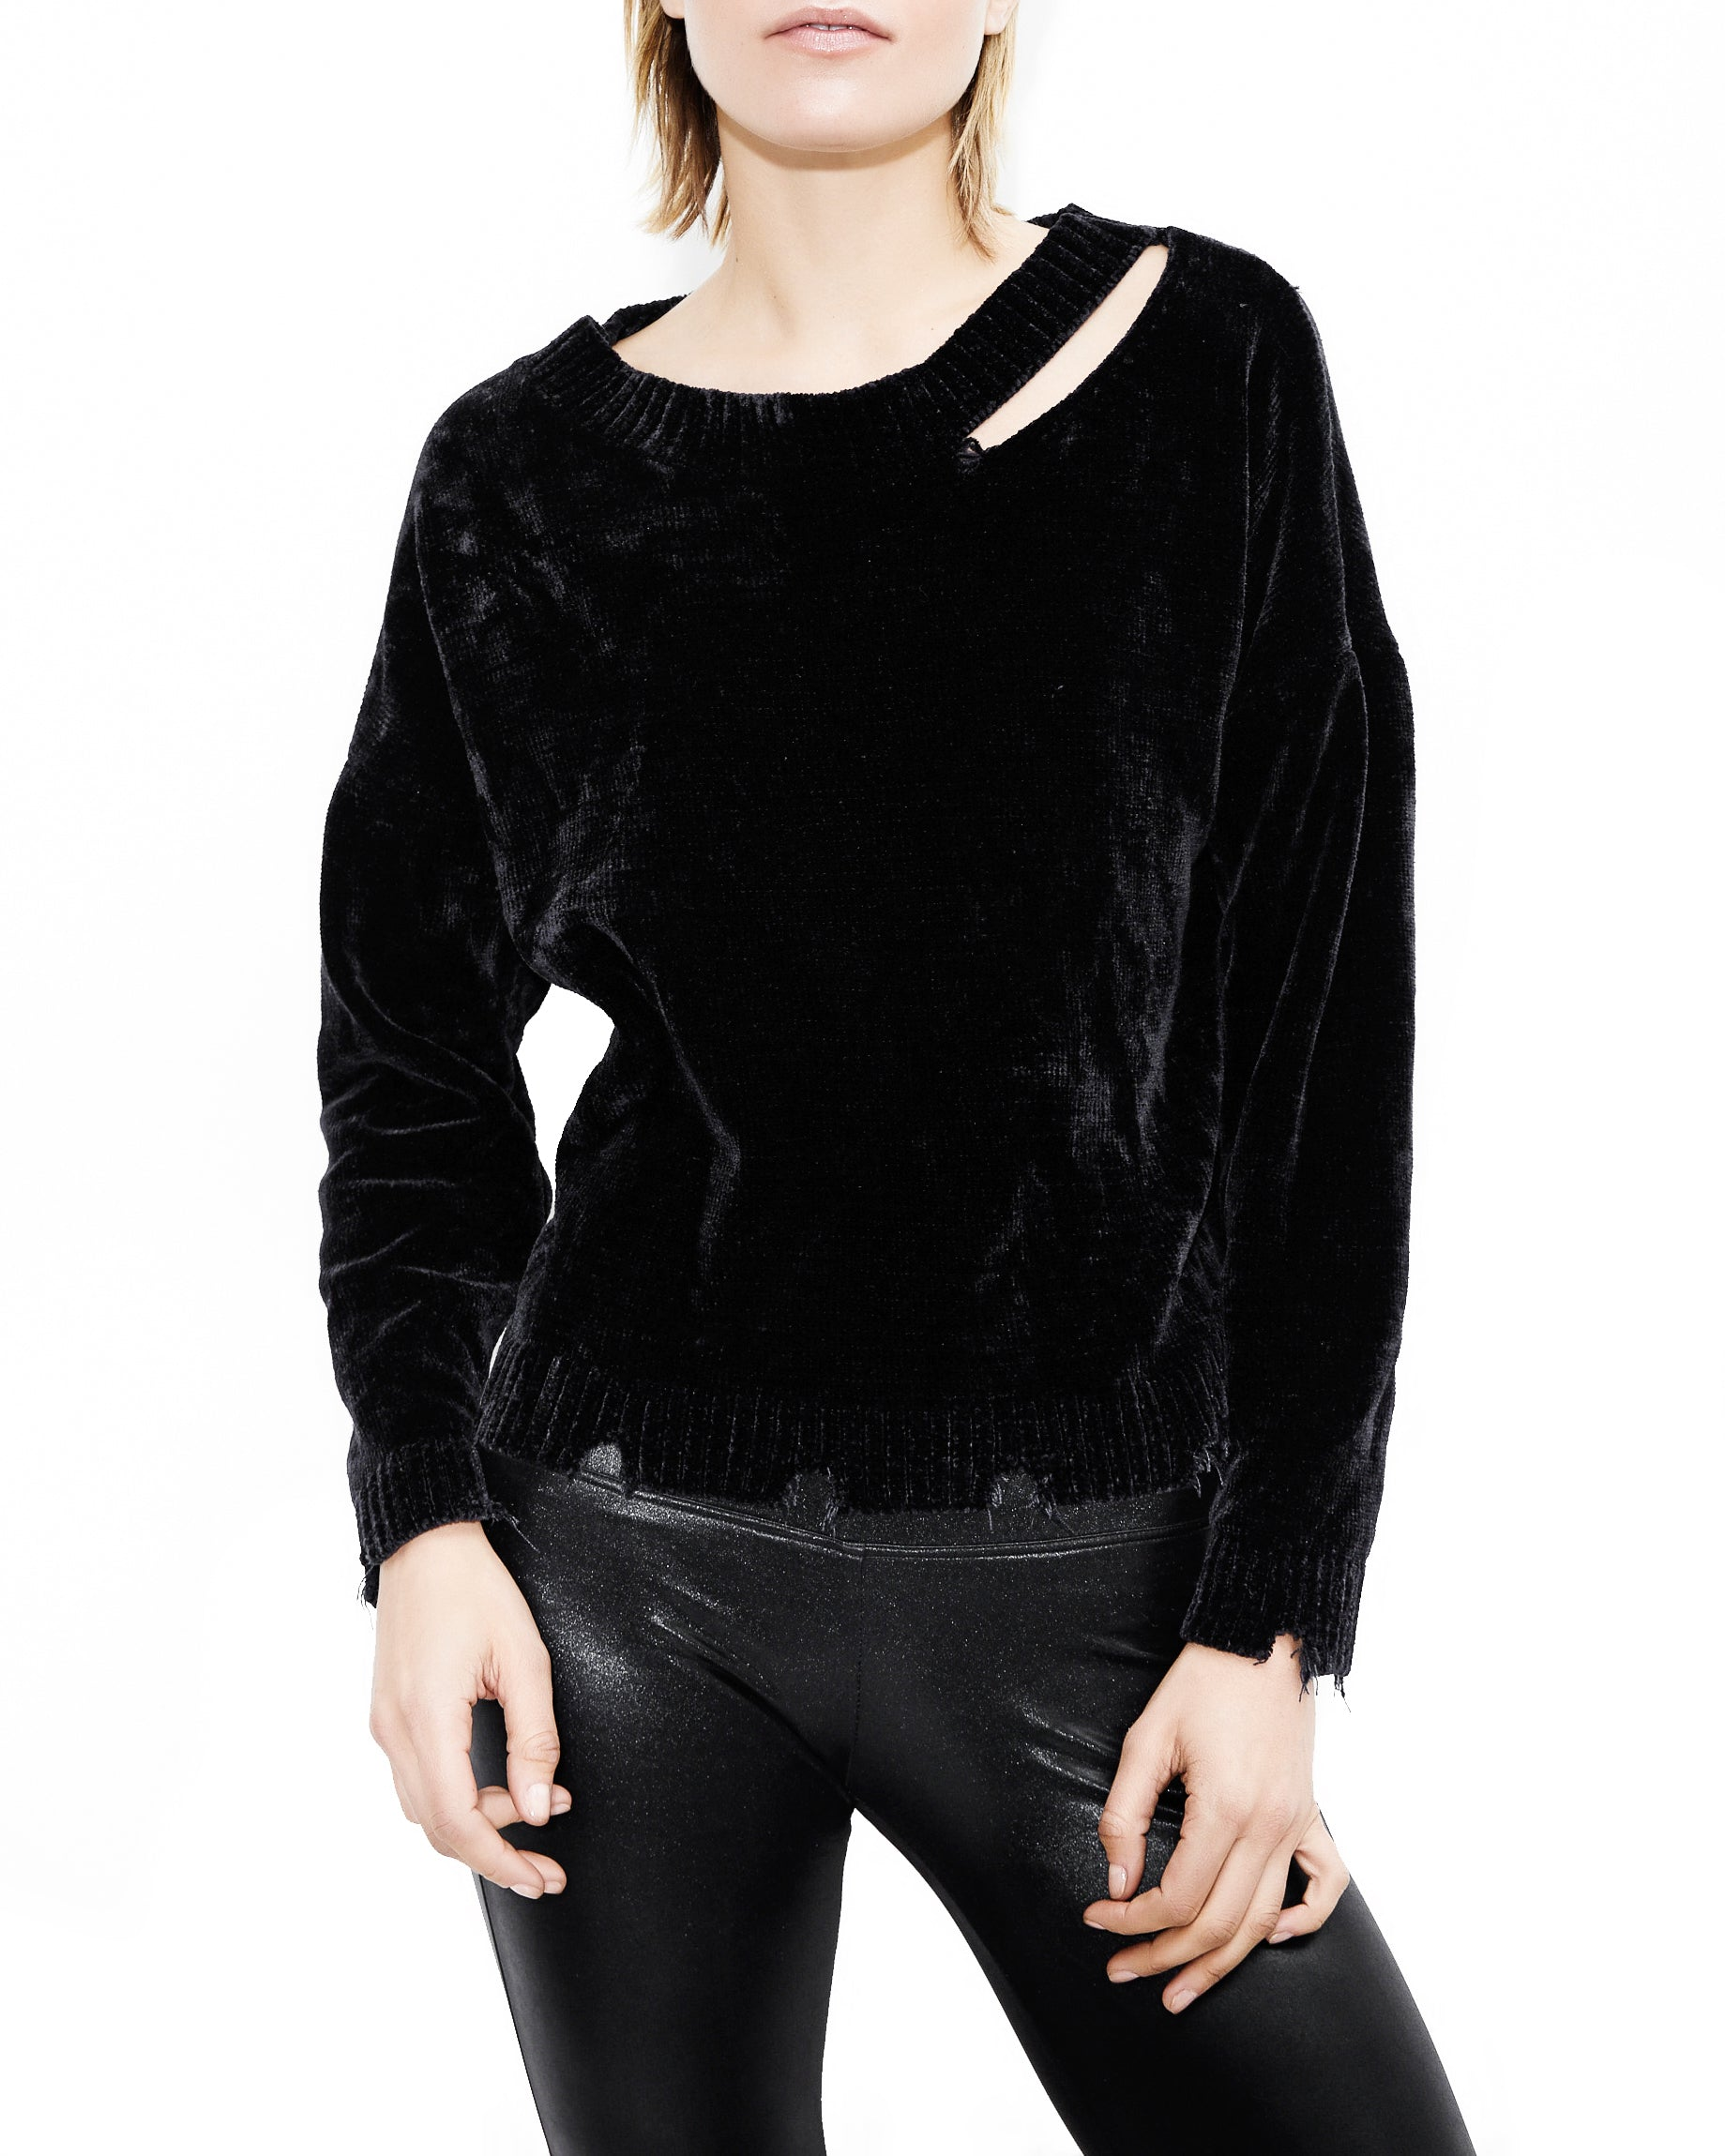 Leslie Chenille Black Top. Generation Love. NYC Modern Women's Clothing